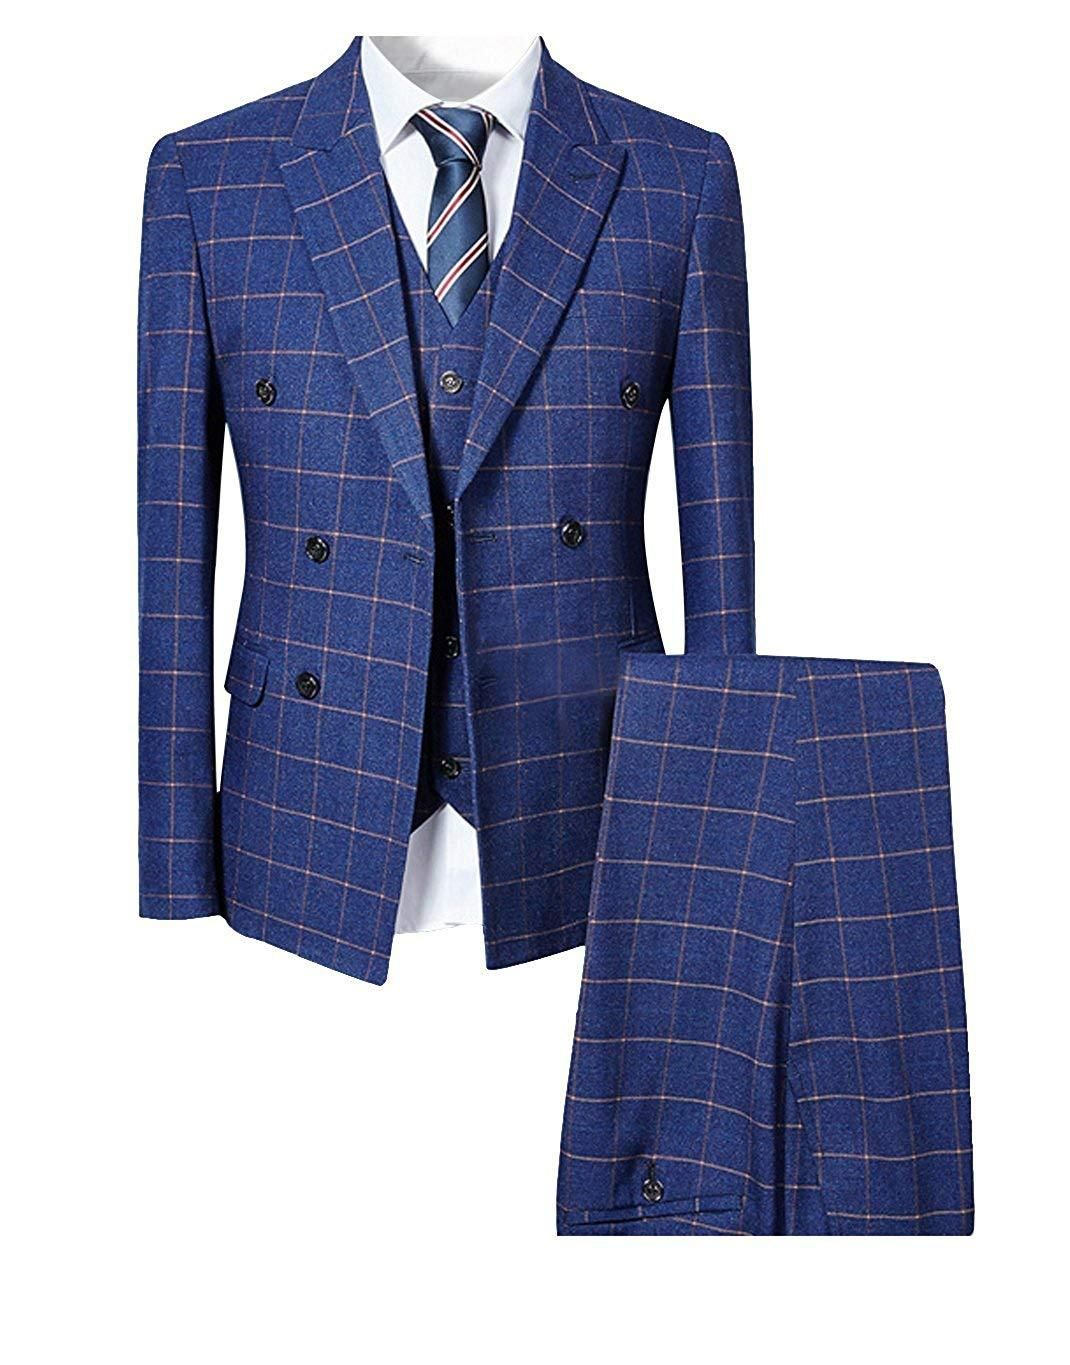 Mens Blue Slim Fit 3 Piece Checked Suits Double Breasted Vintage Fashion Checked Suit Slim Fit Suits Tailor Made Suits